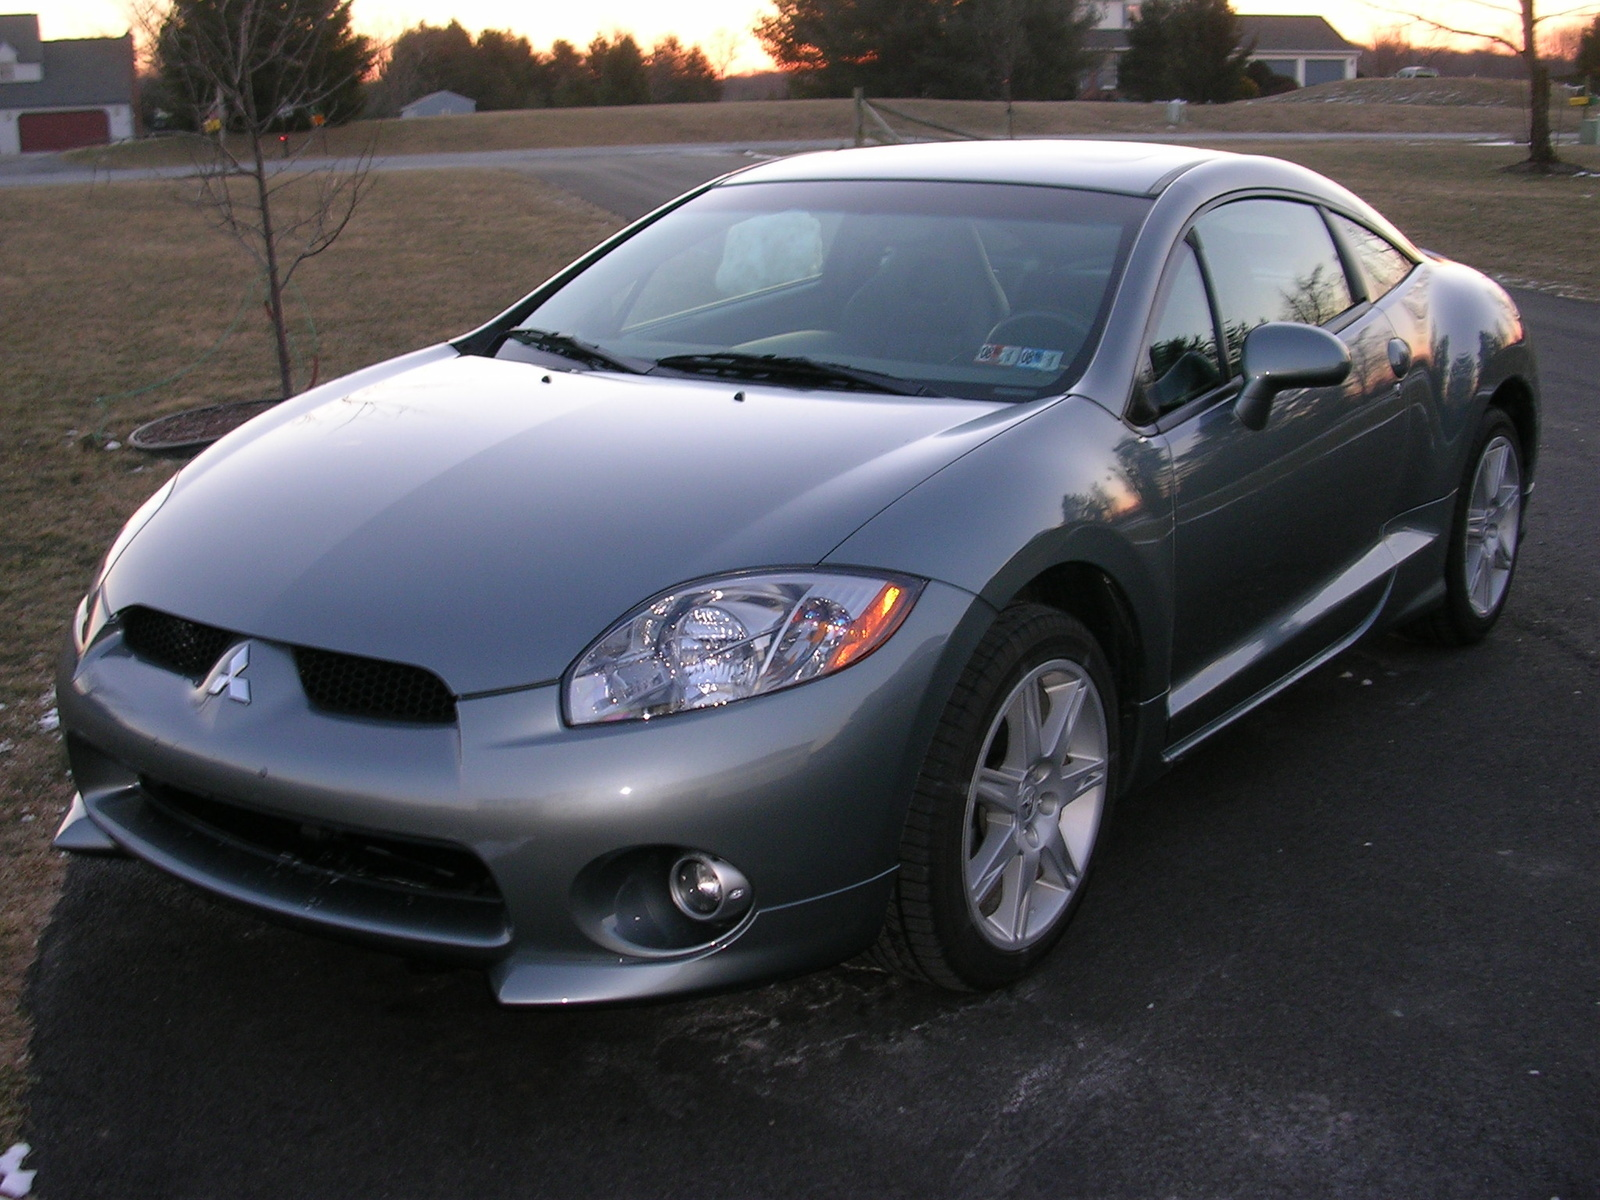 2007 Mitsubishi Eclipse Spyder - User Reviews - CarGurus